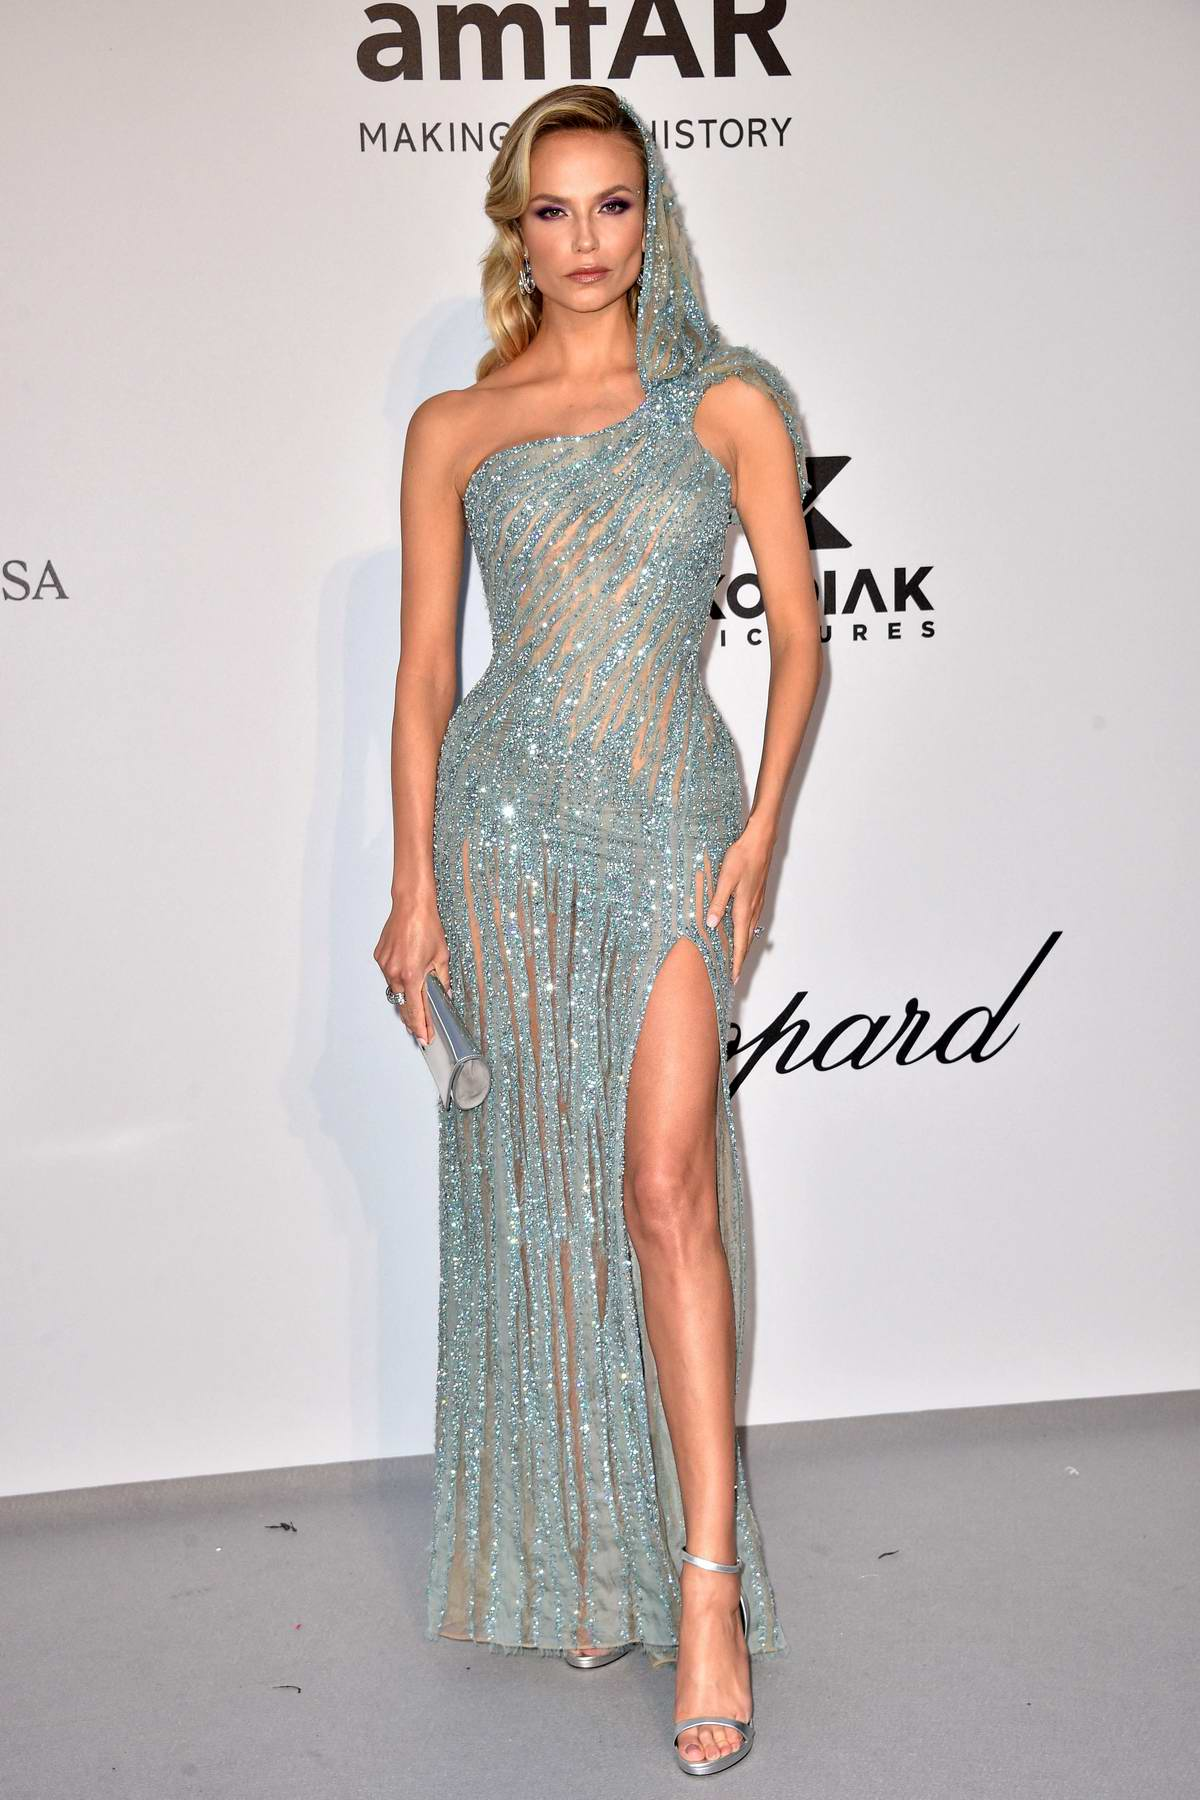 Natasha Poly attends the 26th amfAR Gala held at Hotel du Cap-Eden-Roc during the 72nd annual Cannes Film Festival in Cannes, France